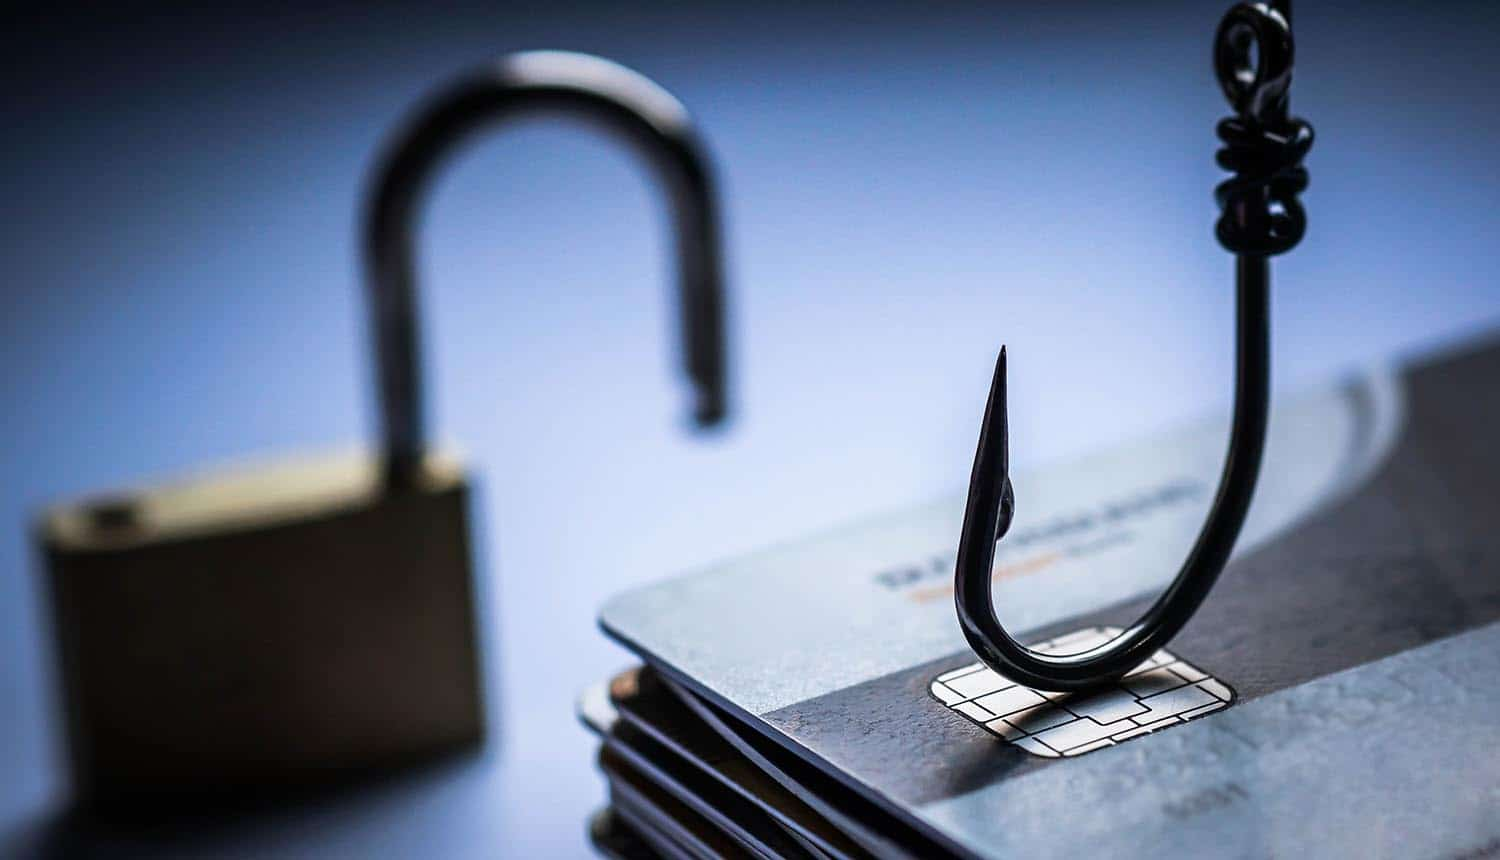 Fishing hook and unlocked padlock showing strategy needed for phishing